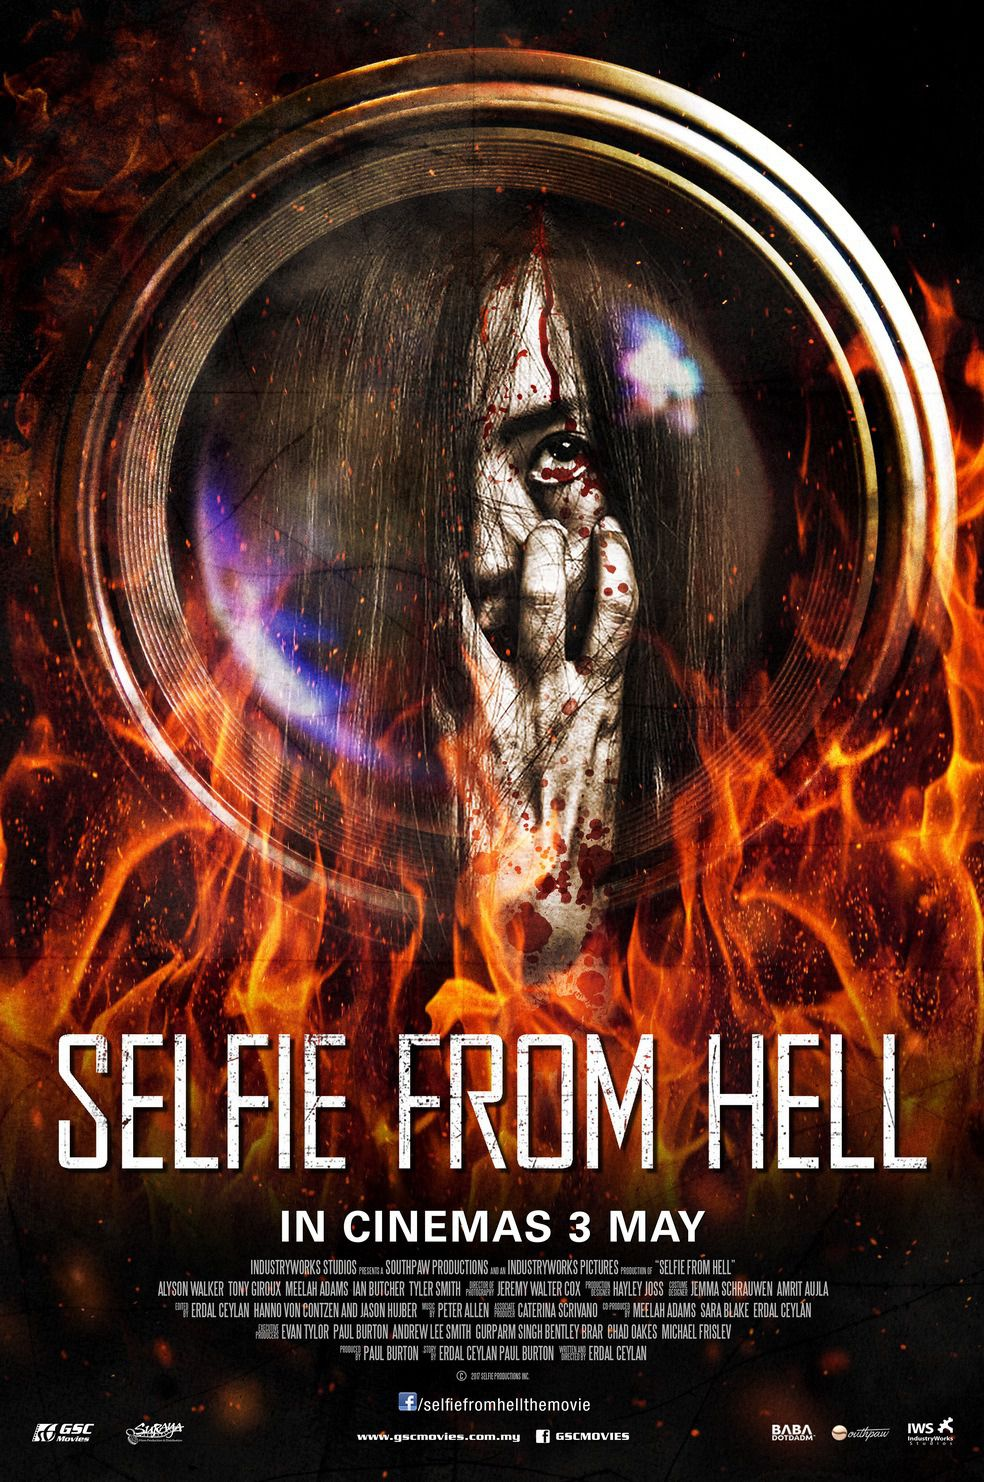 Selfie from Hell - horror film poster